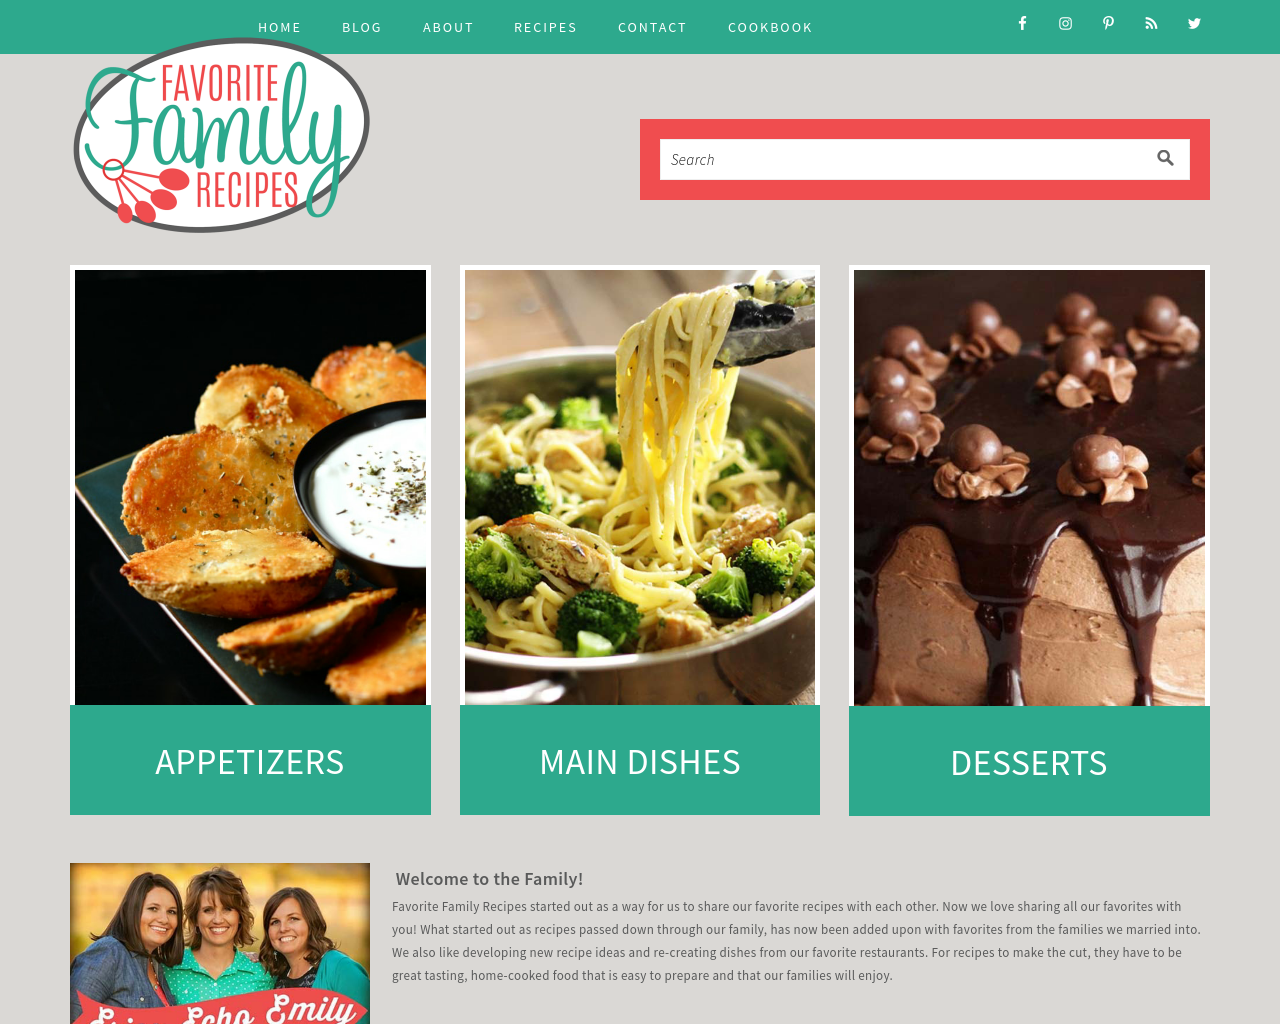 FAVORITE-FAMILY-RECIPES-Advertising-Reviews-Pricing